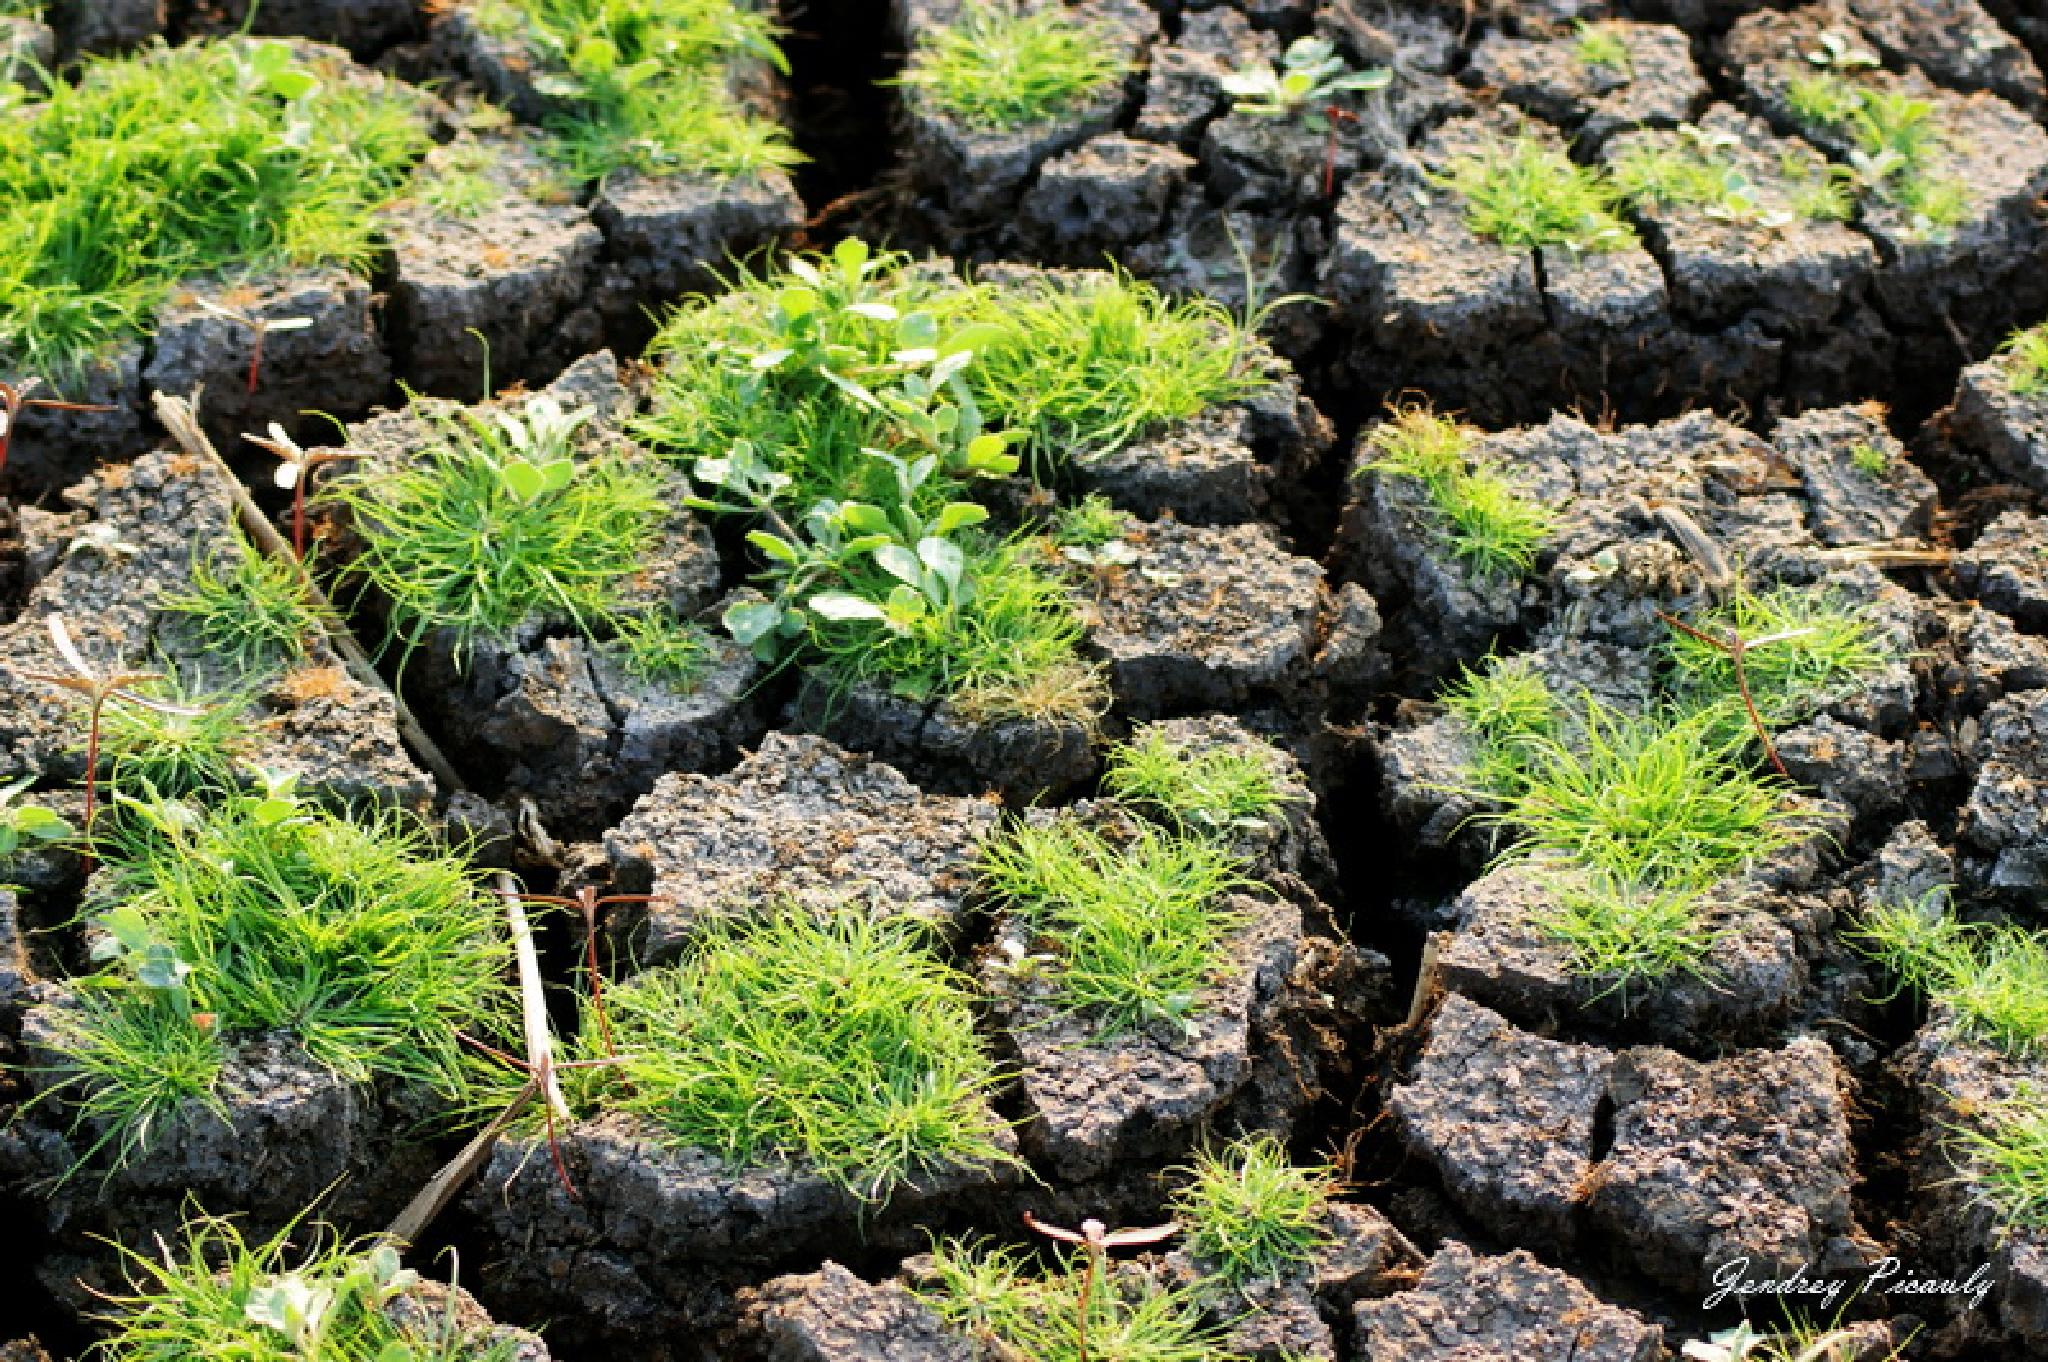 Dry soil but give life by Jendrey